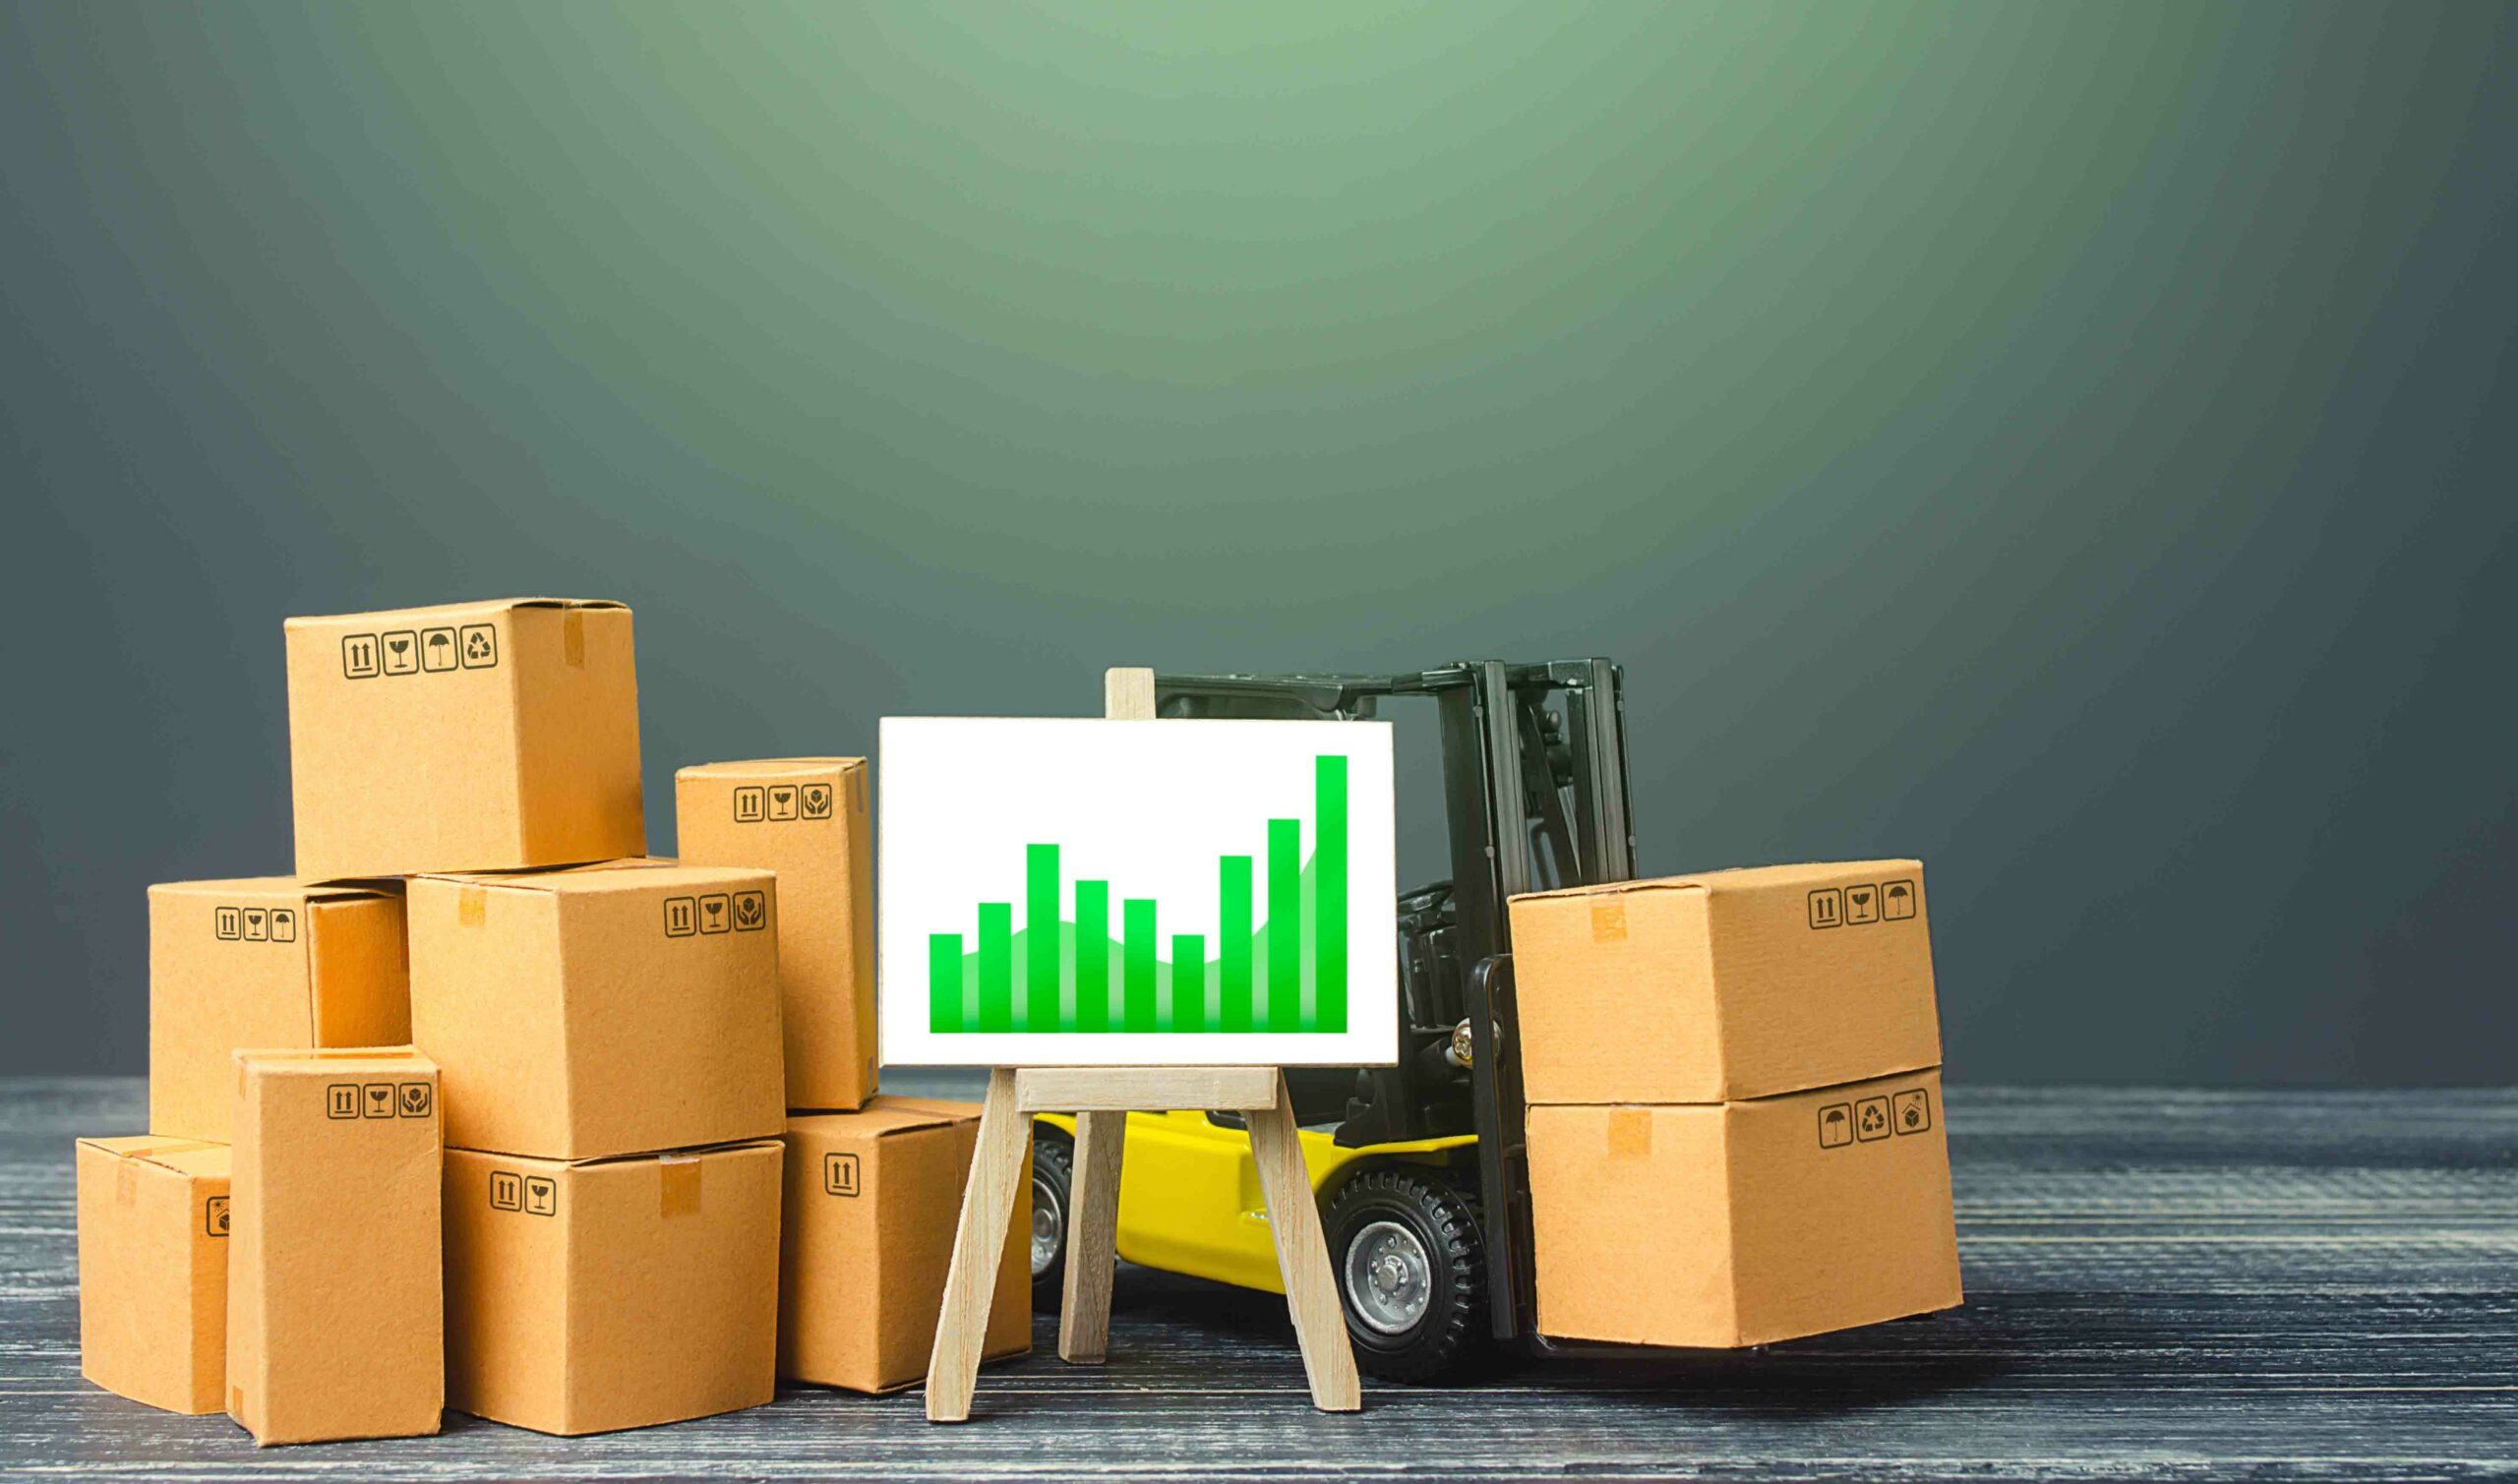 will container freight rates still rise? Atlas Logistic Network